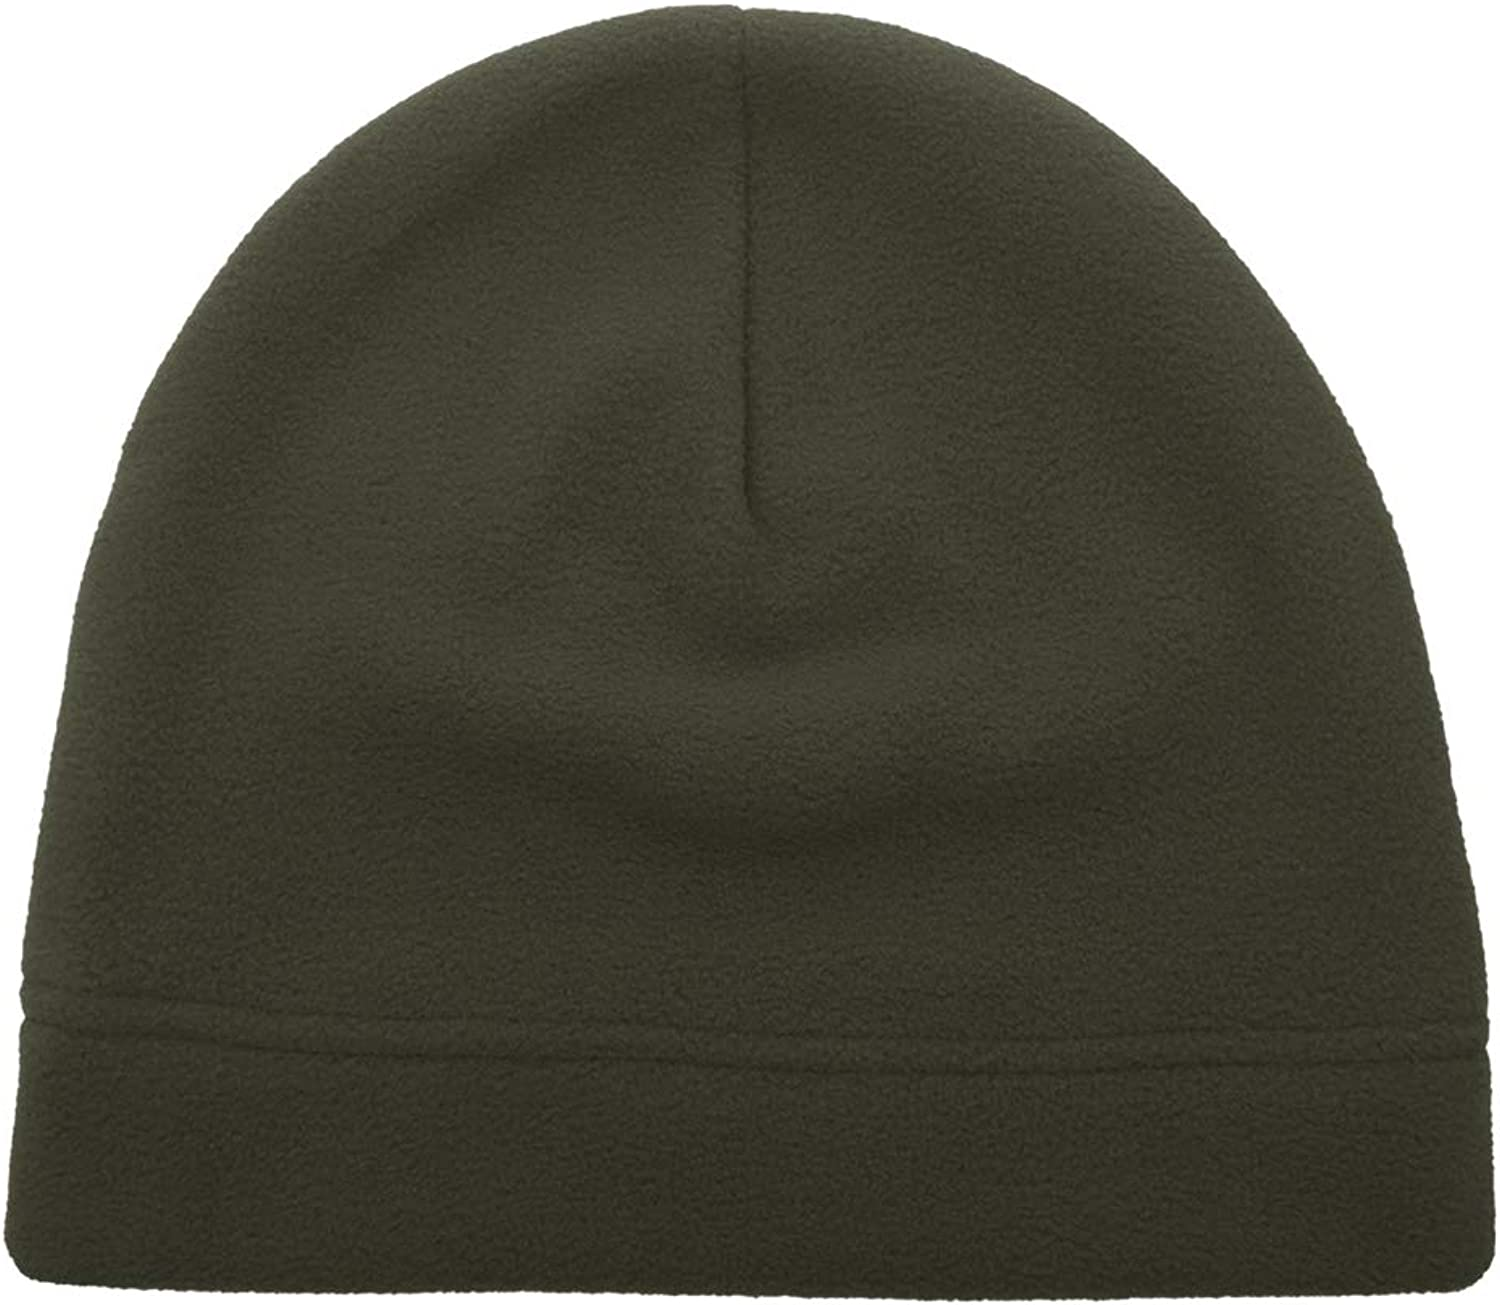 (Price 24PCS) Opromo Warm Winter Hat Skull Cap Fleece Beanie For Men and Women